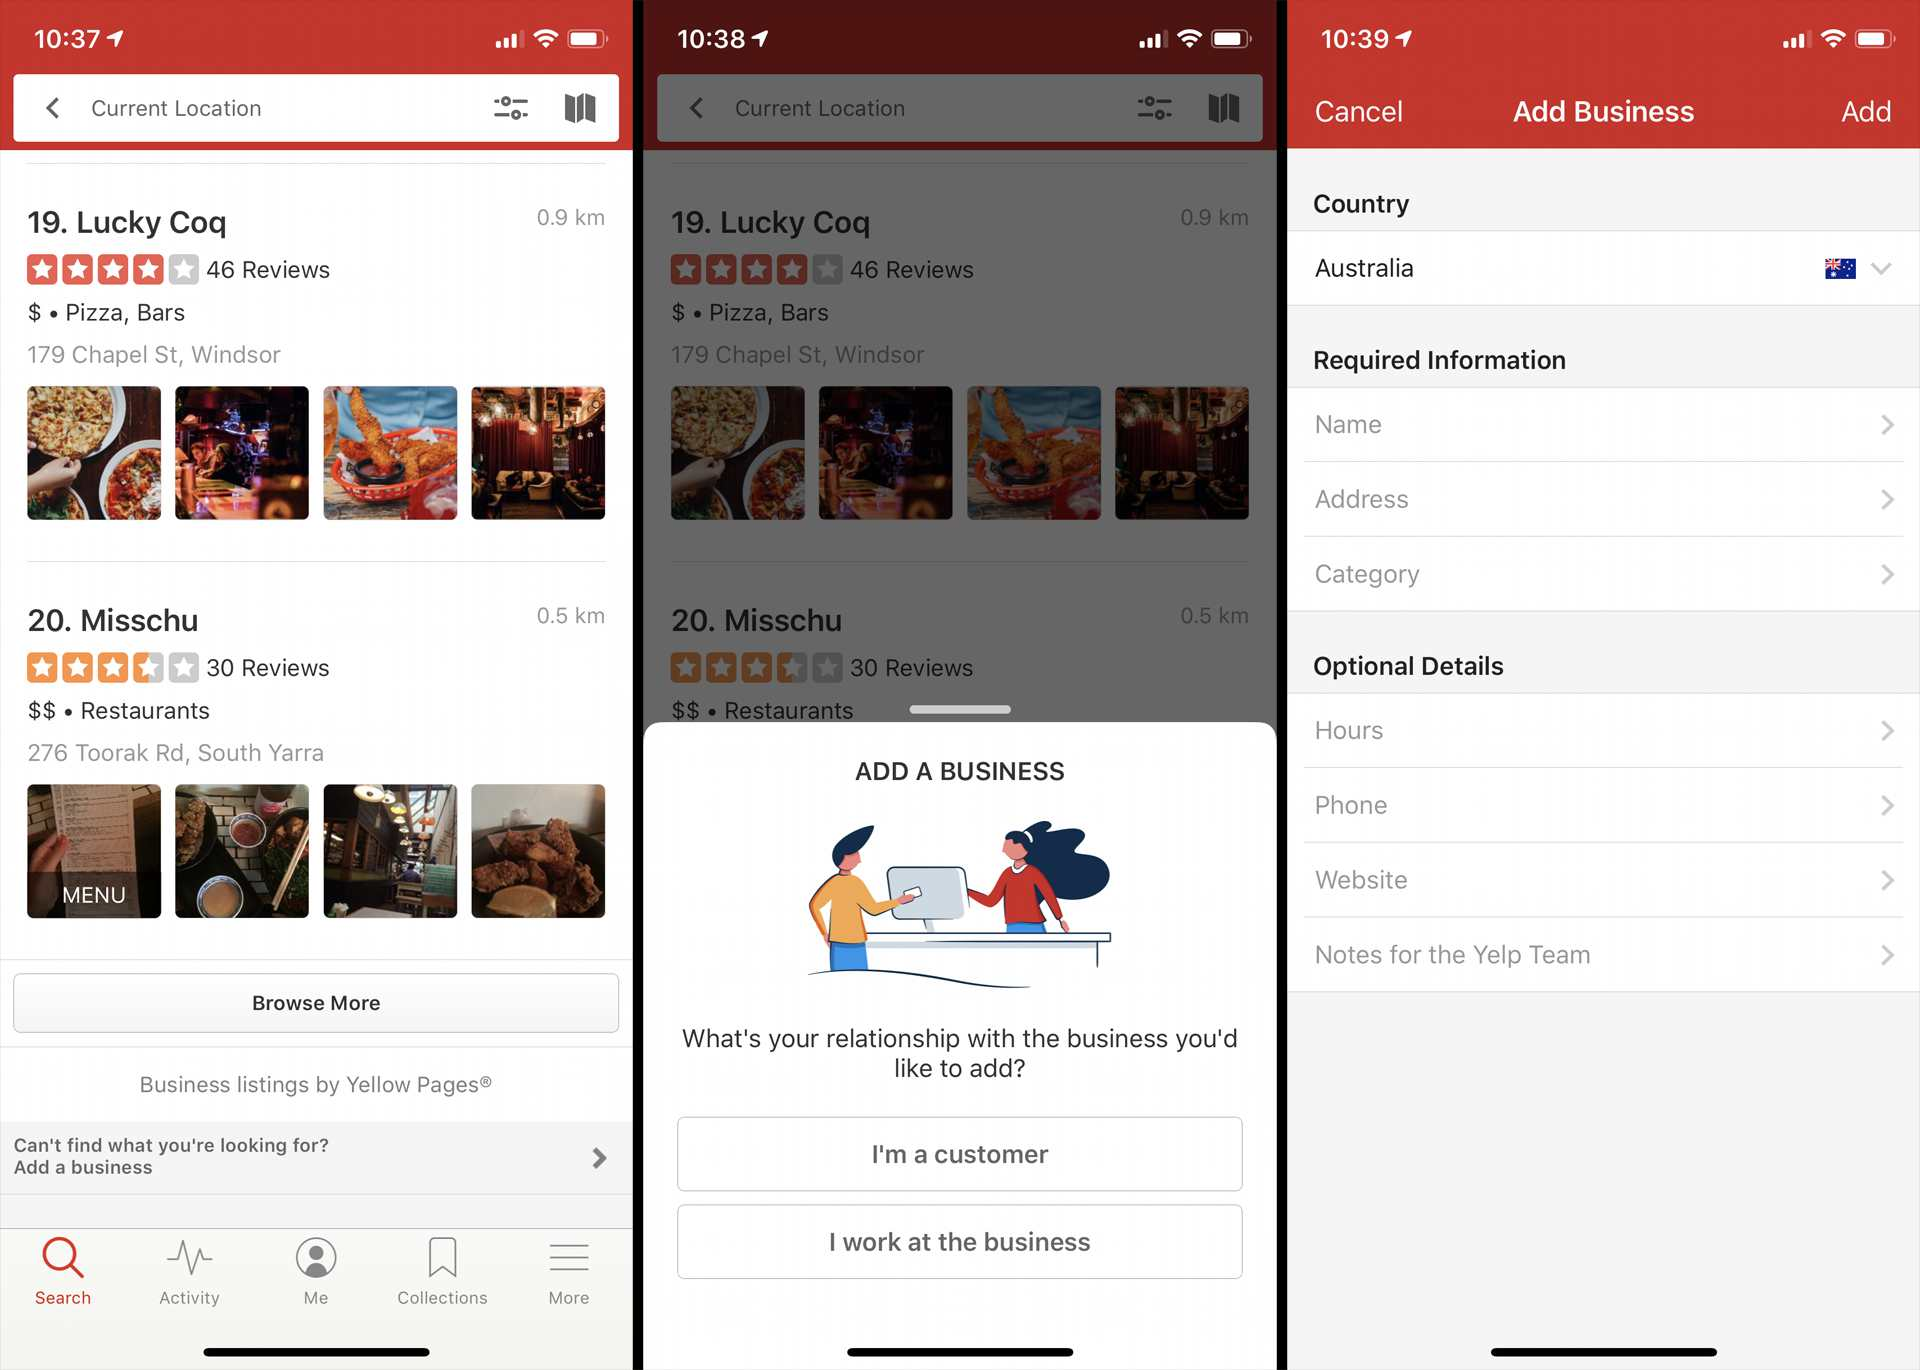 Adding a new business in the Yelp iOS app.